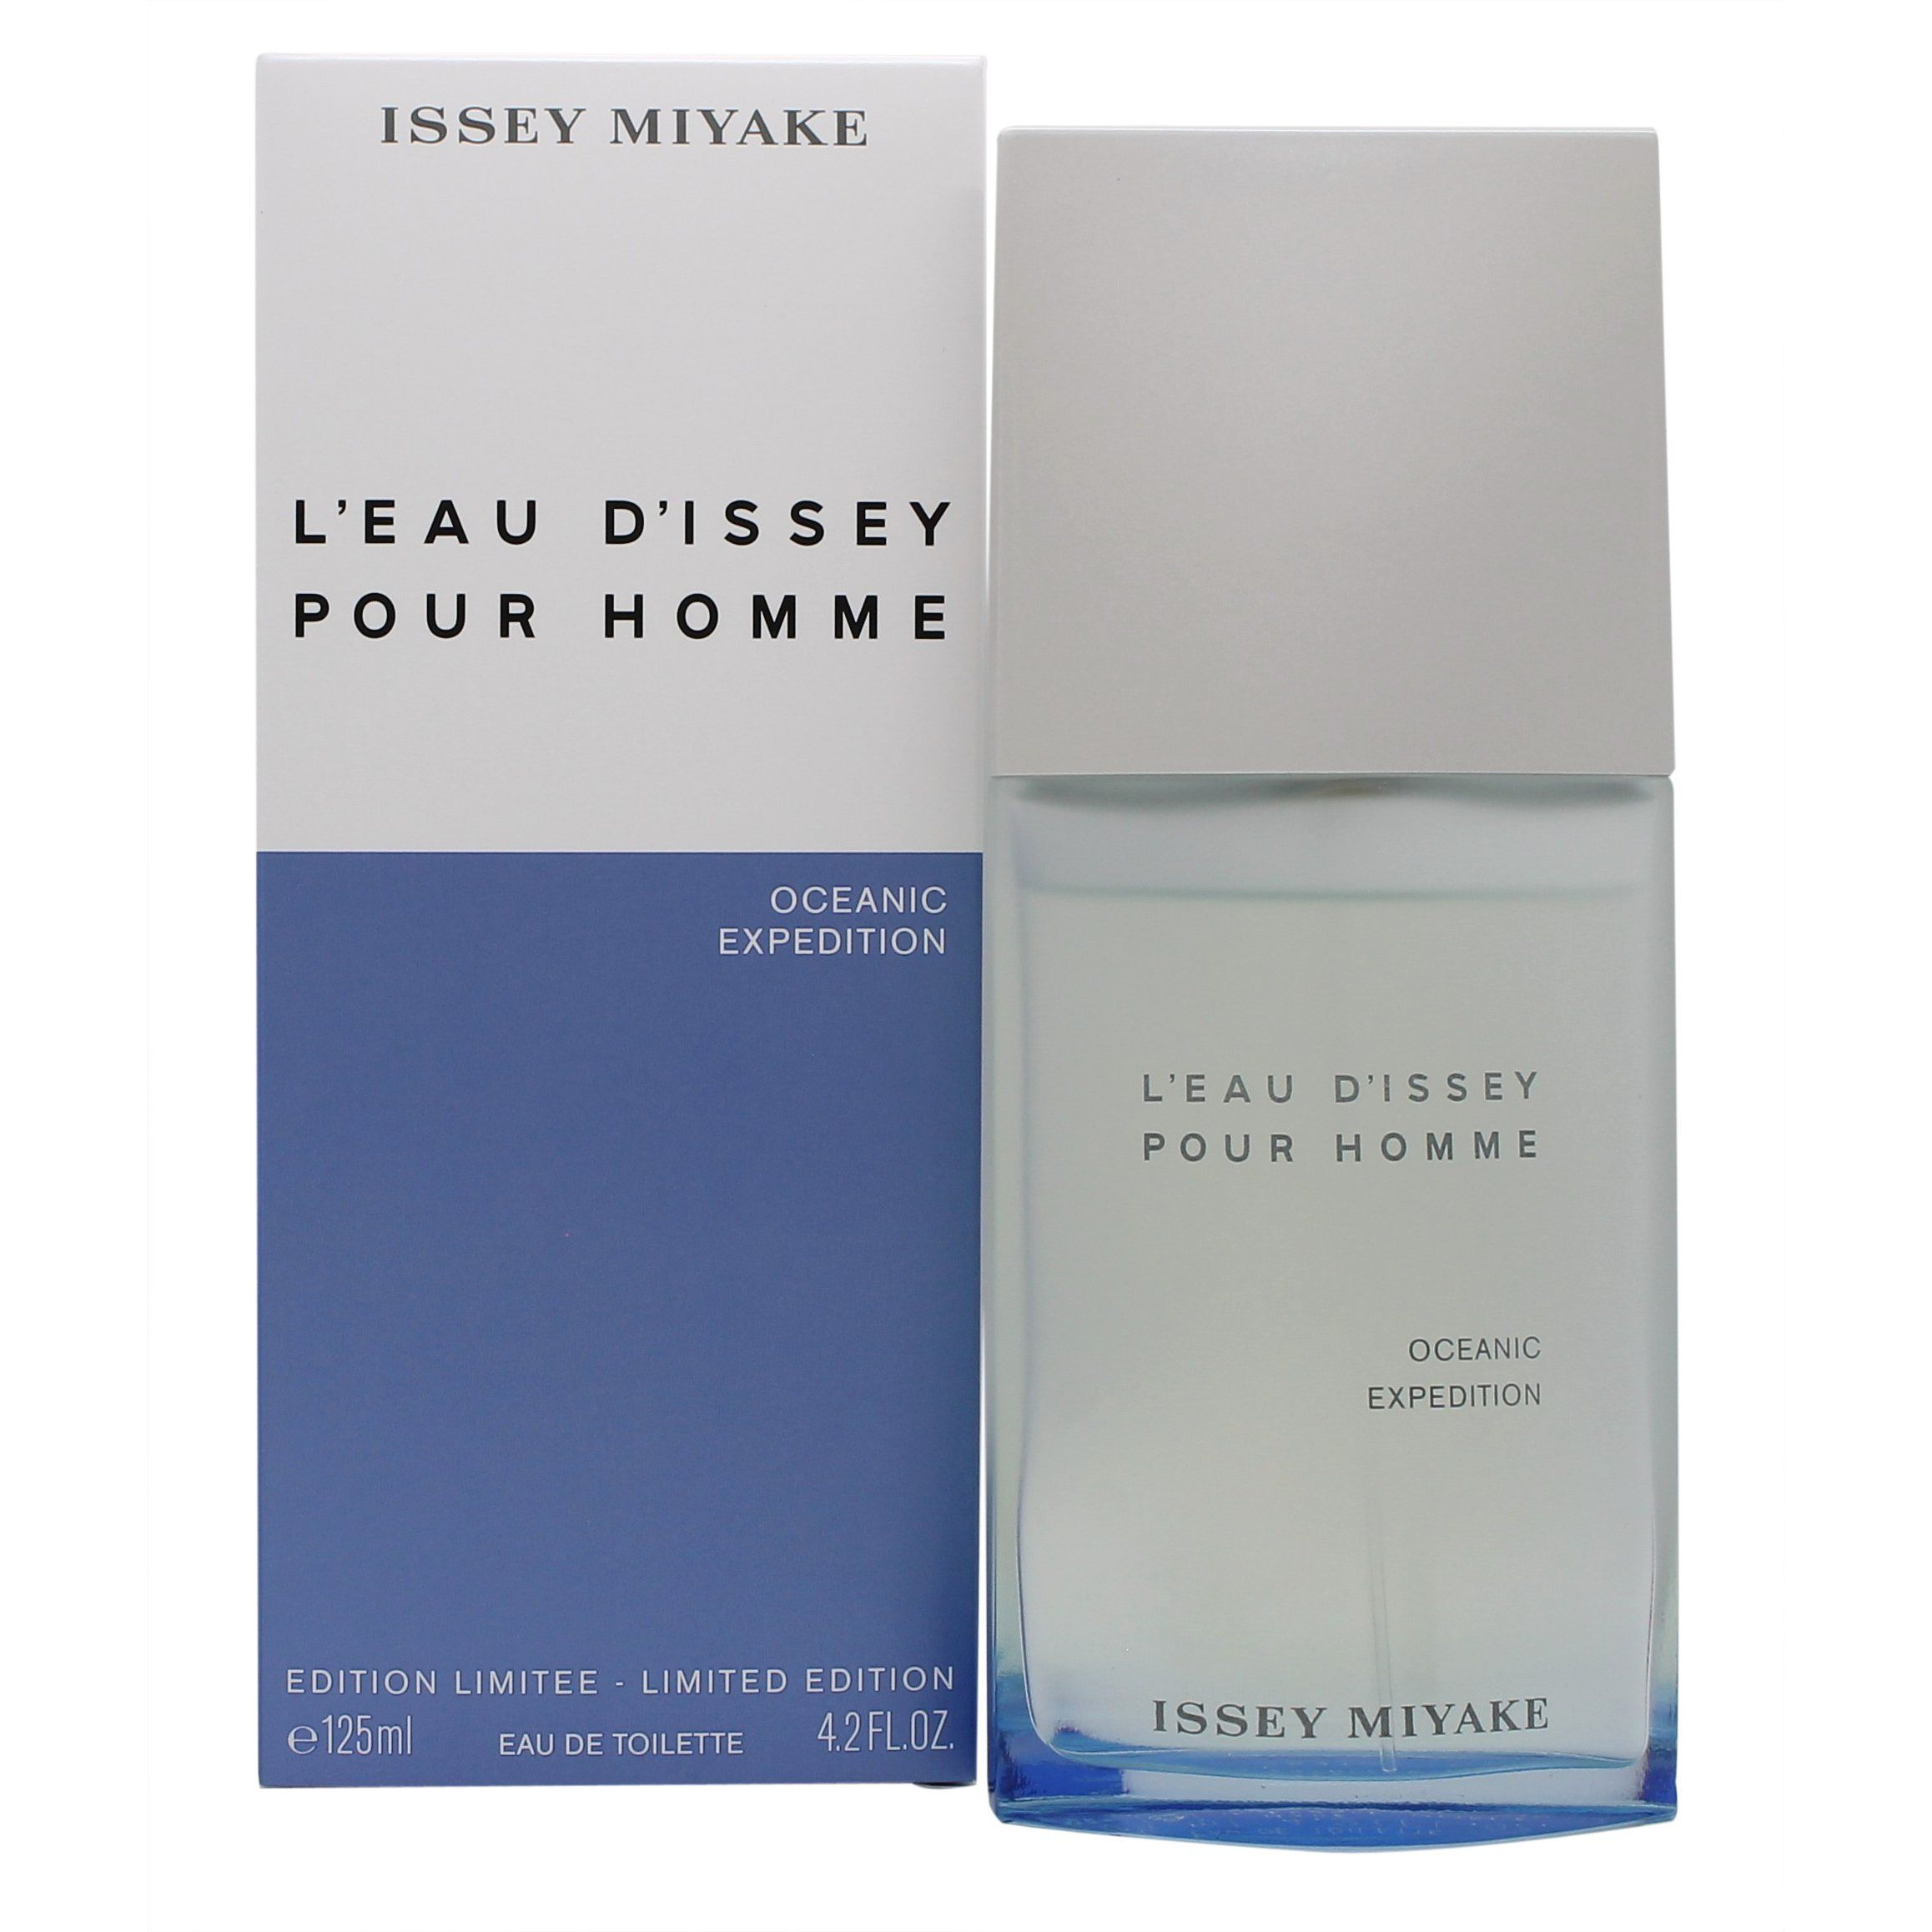 Issey Miyake LEau dIssey pour Homme Oceanic Expedition Eau de Toilette 125 ml Spray